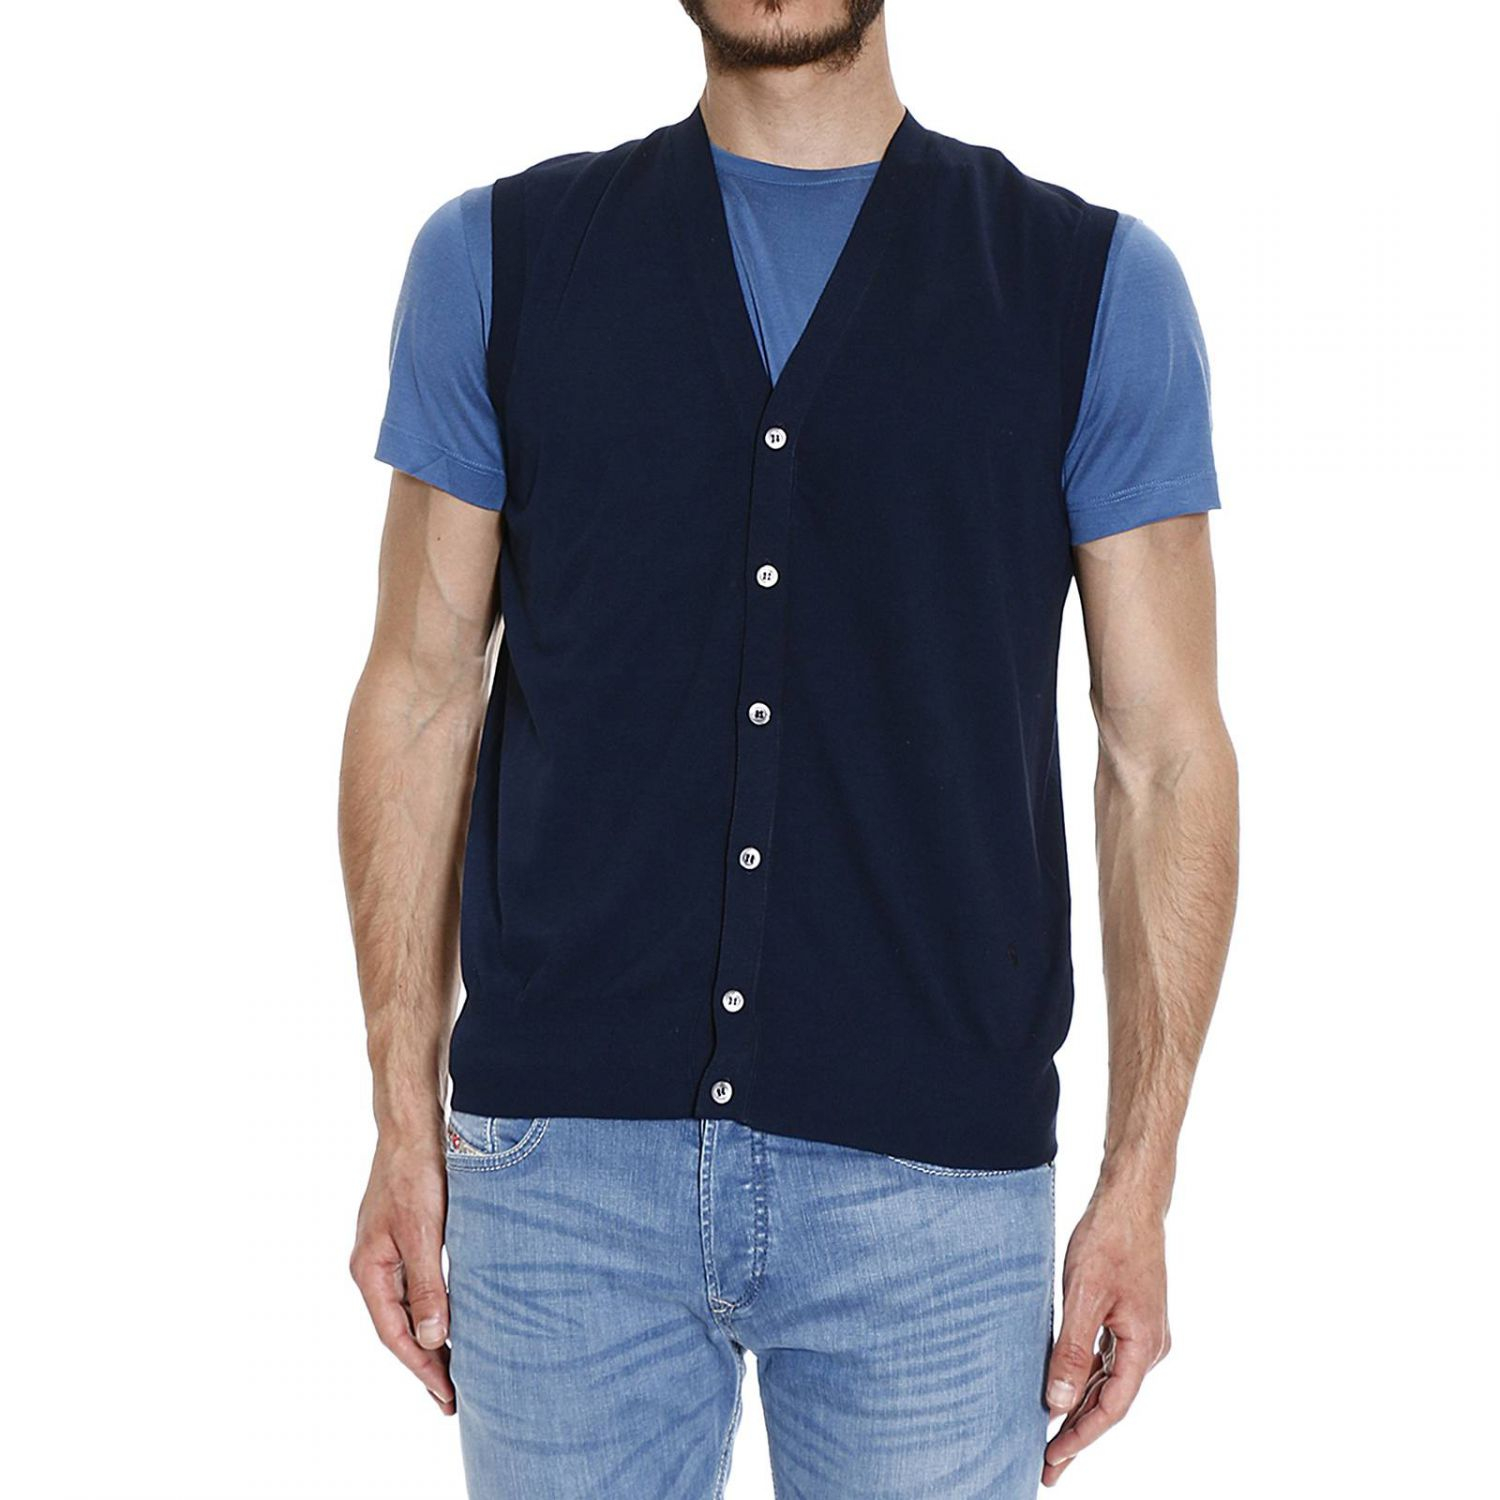 Find mens sleeveless cardigan at ShopStyle. Shop the latest collection of mens sleeveless cardigan from the most popular stores - all in one place.